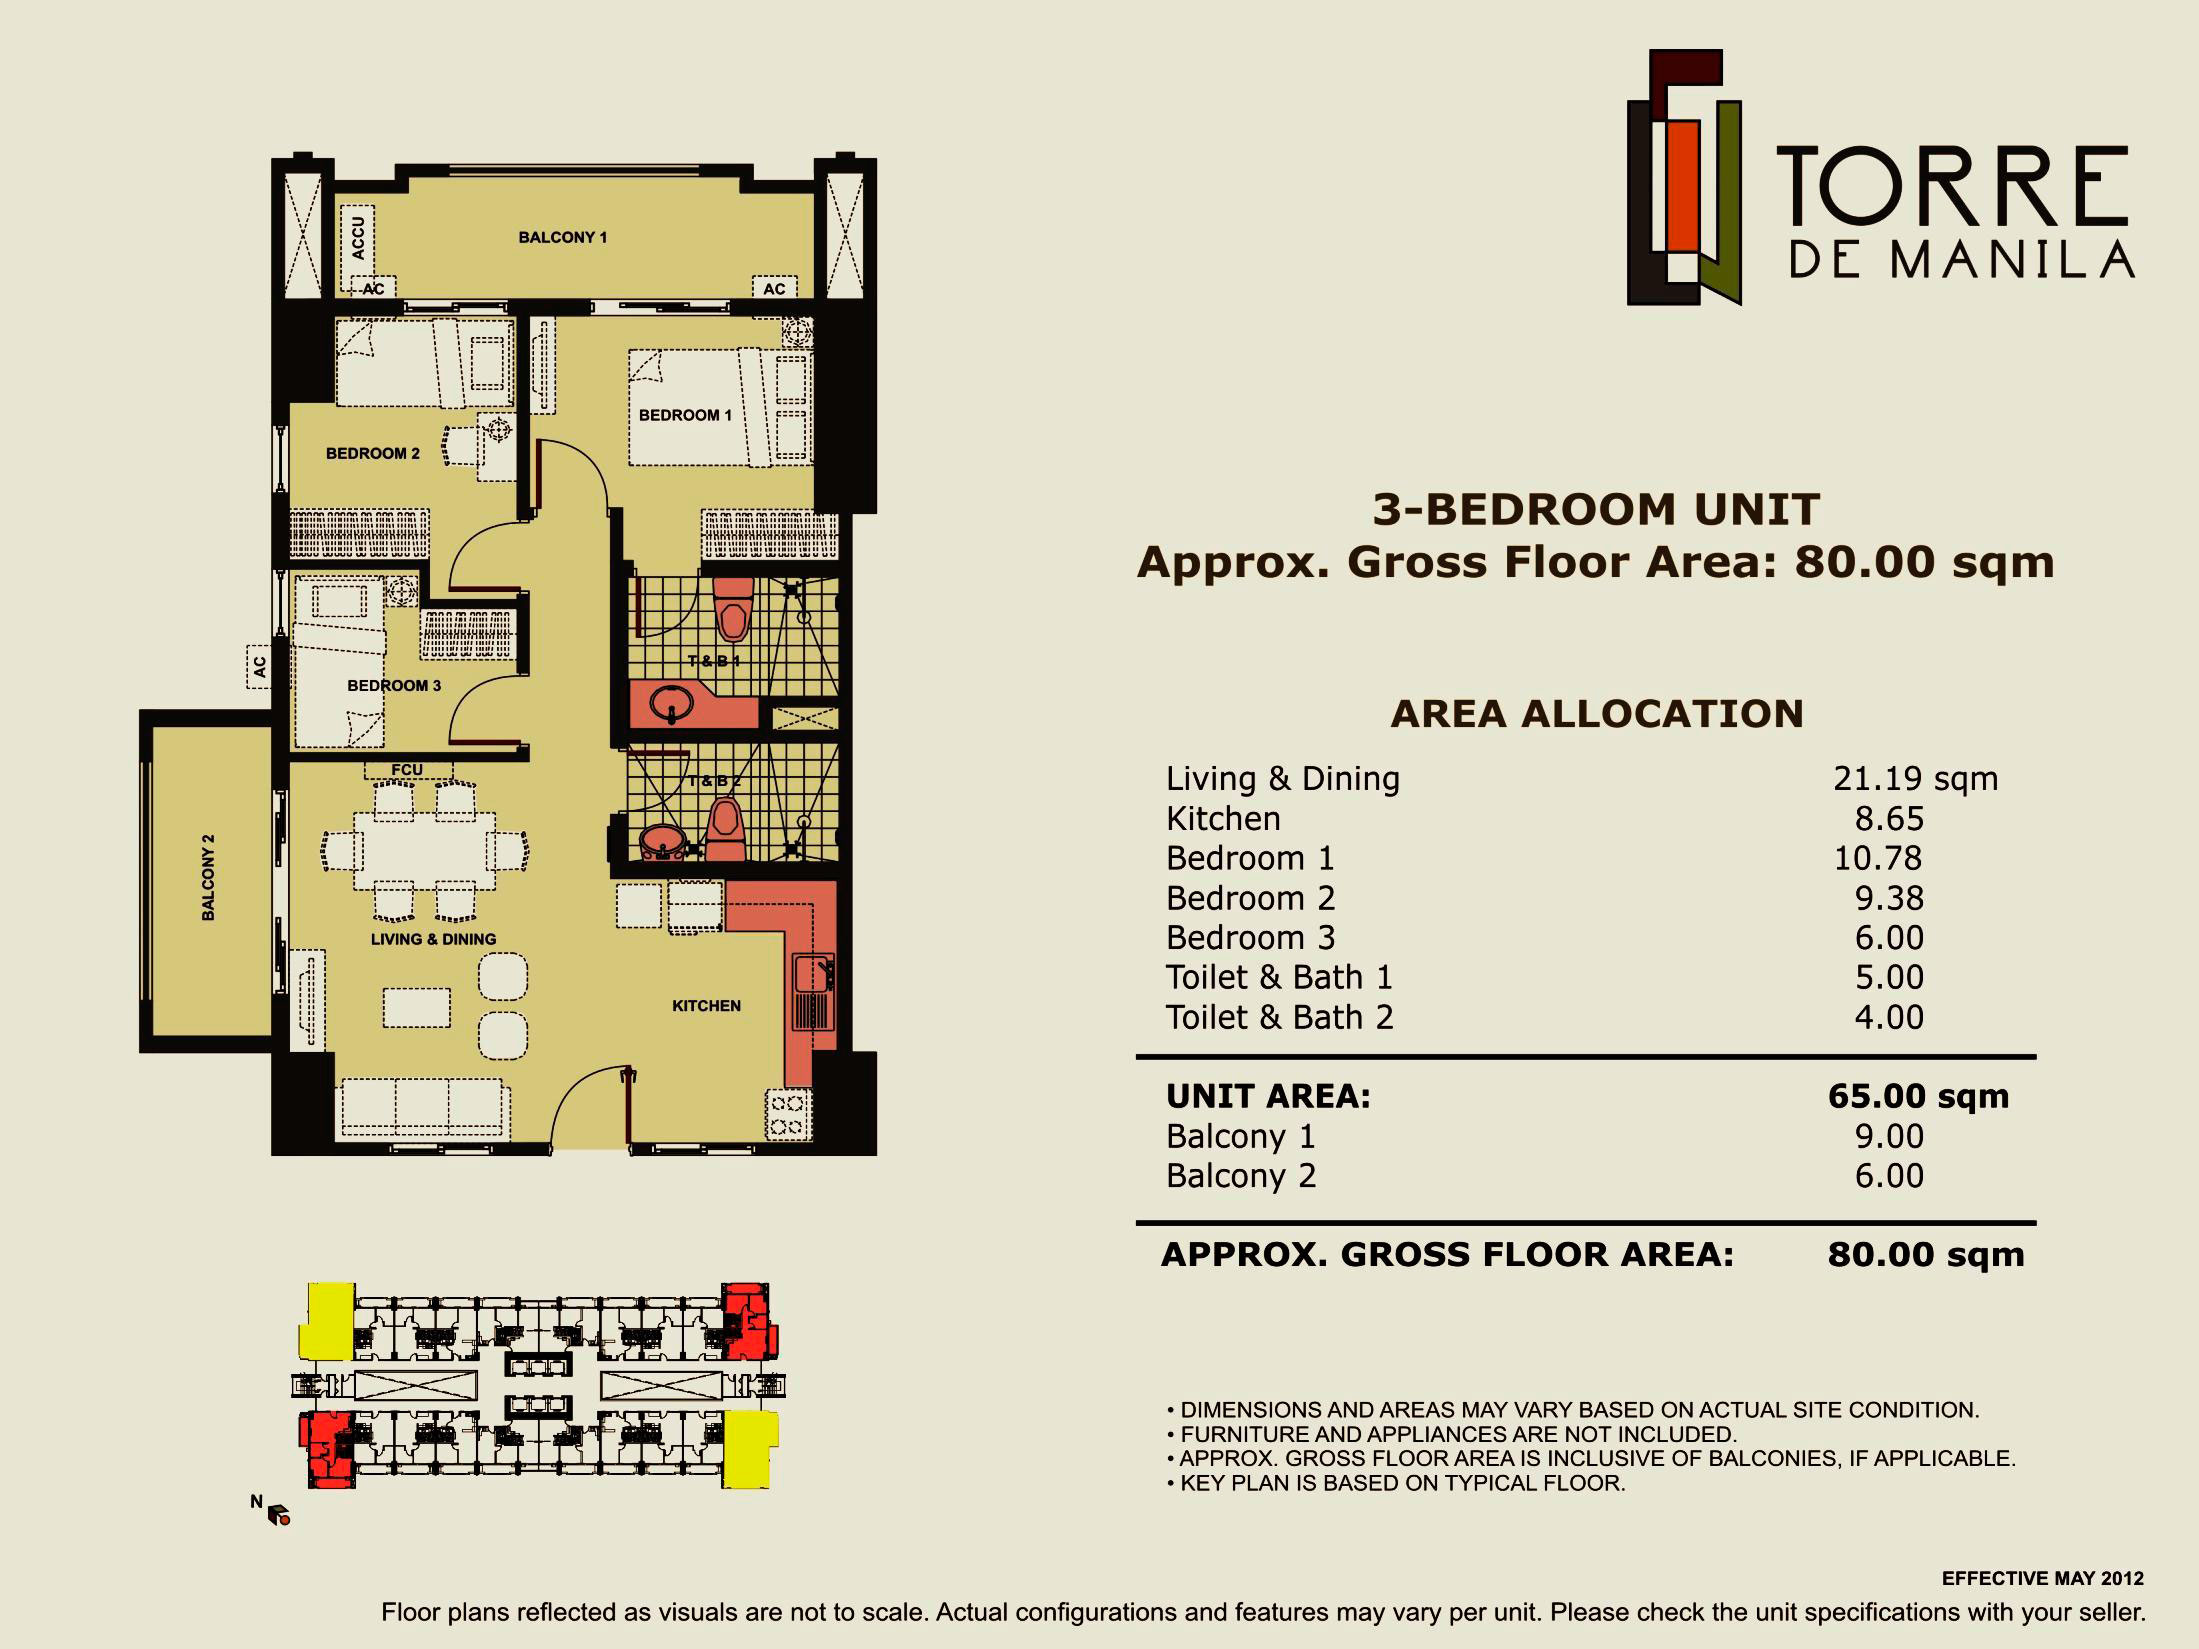 torre de manila Torre de manila dmci is a single building residential condominium by dmci homes check our floor plans and pricing for 1 br, 2 br and 3 bedroom units.